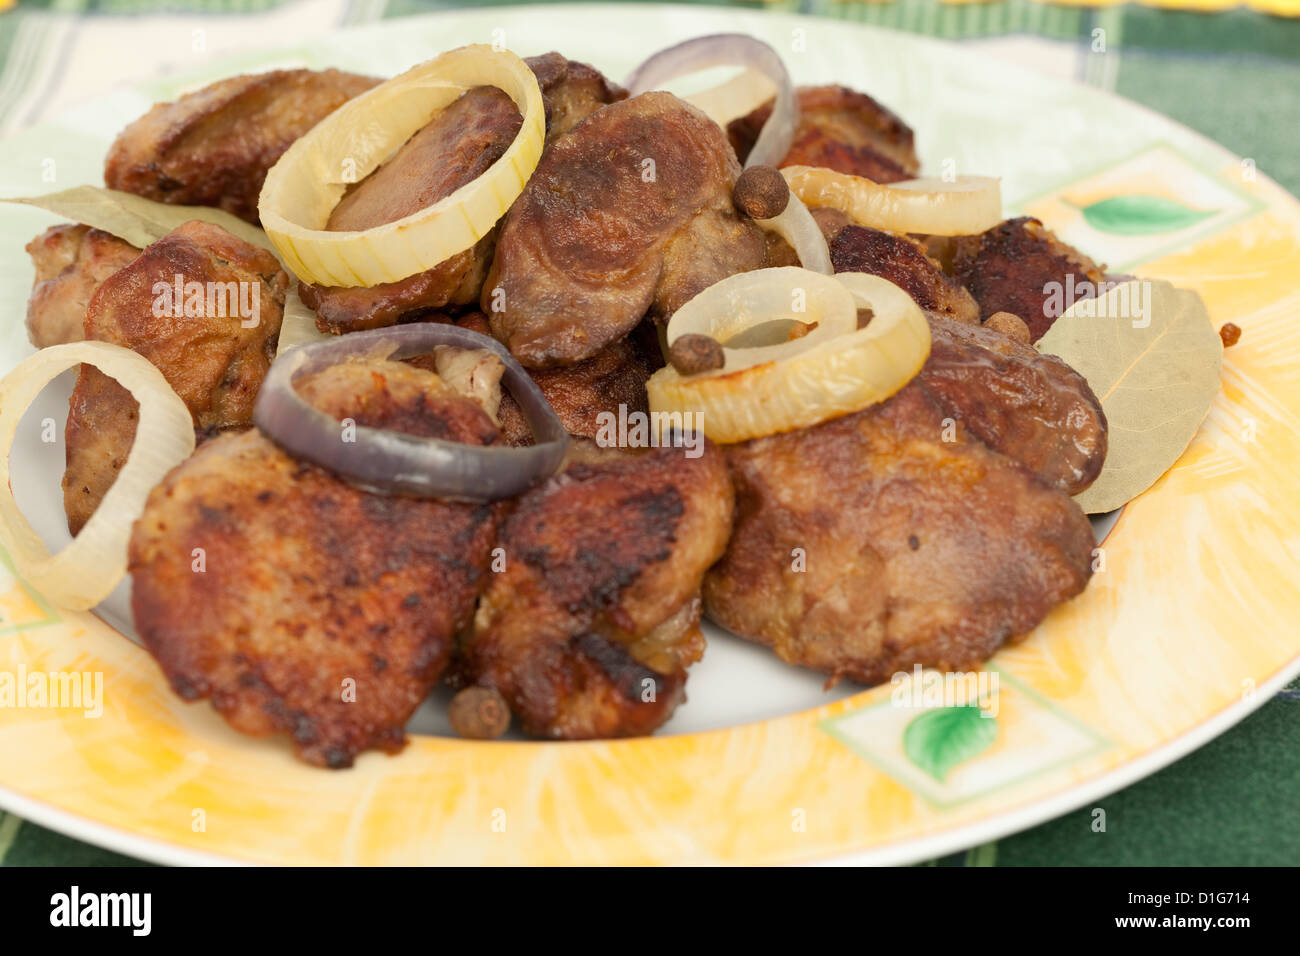 liver with chicken with onion on plate - Stock Image